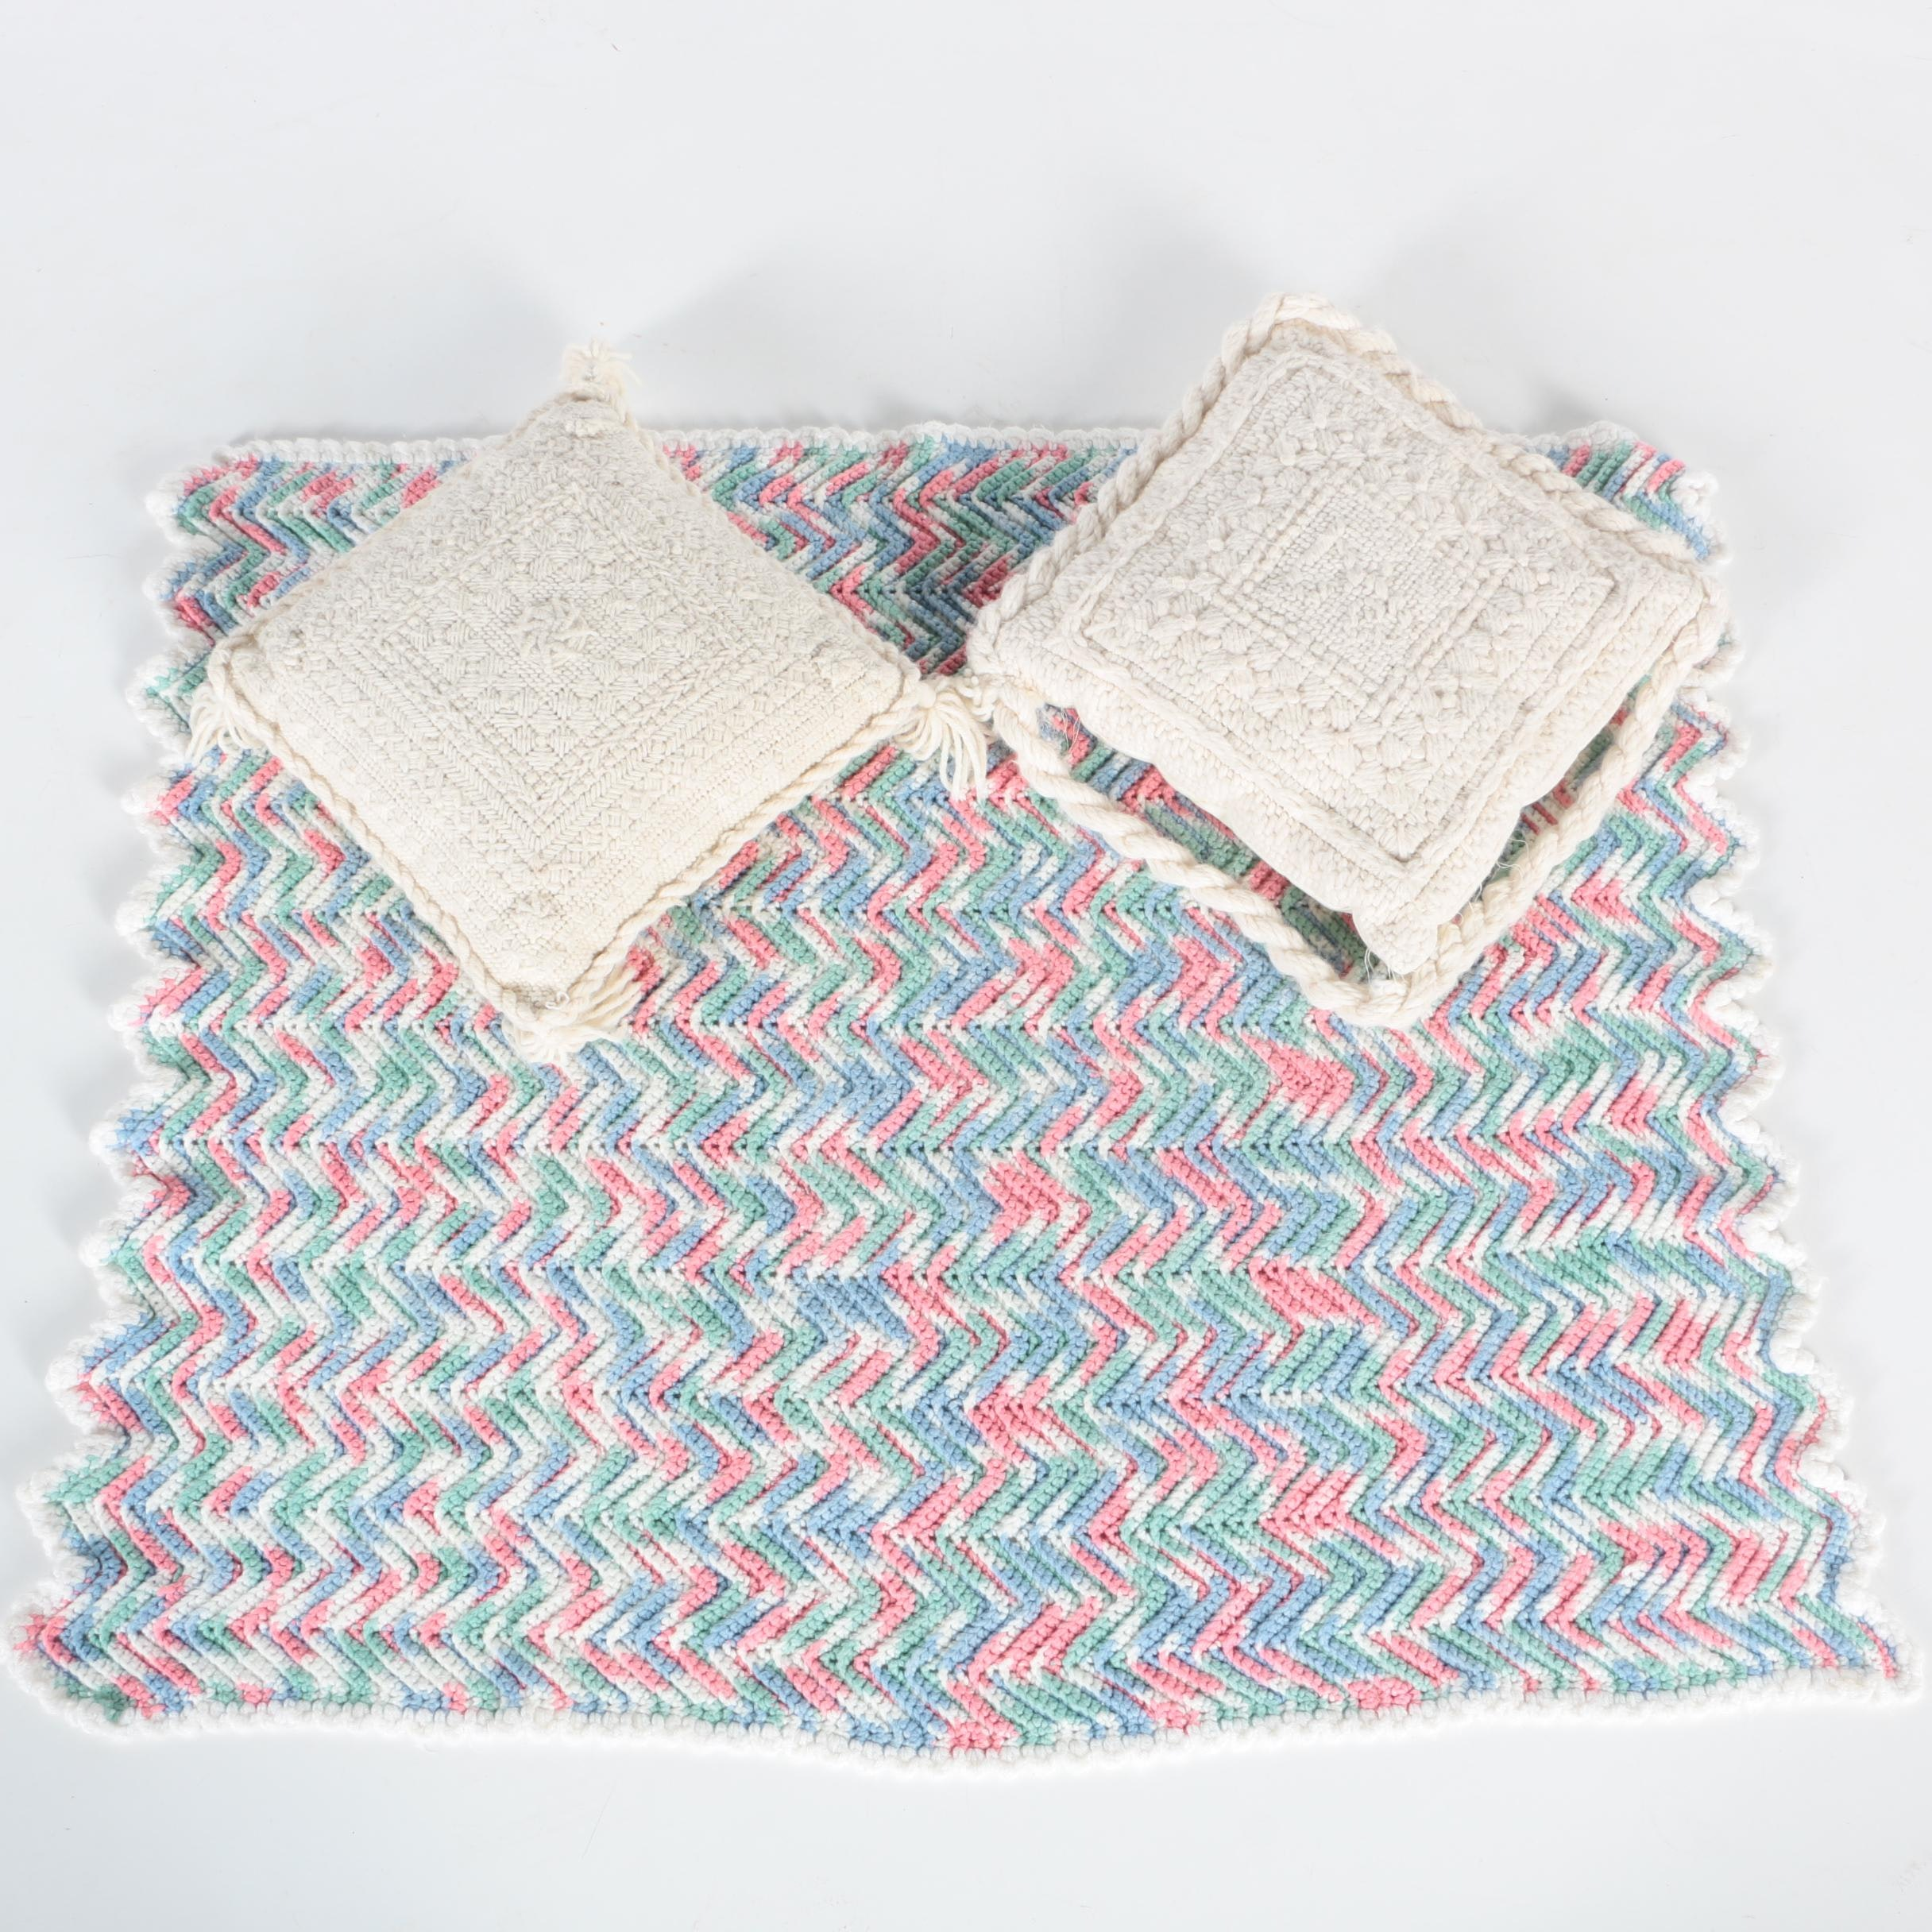 Crocheted Baby Blanket and Needlepoint Pillows